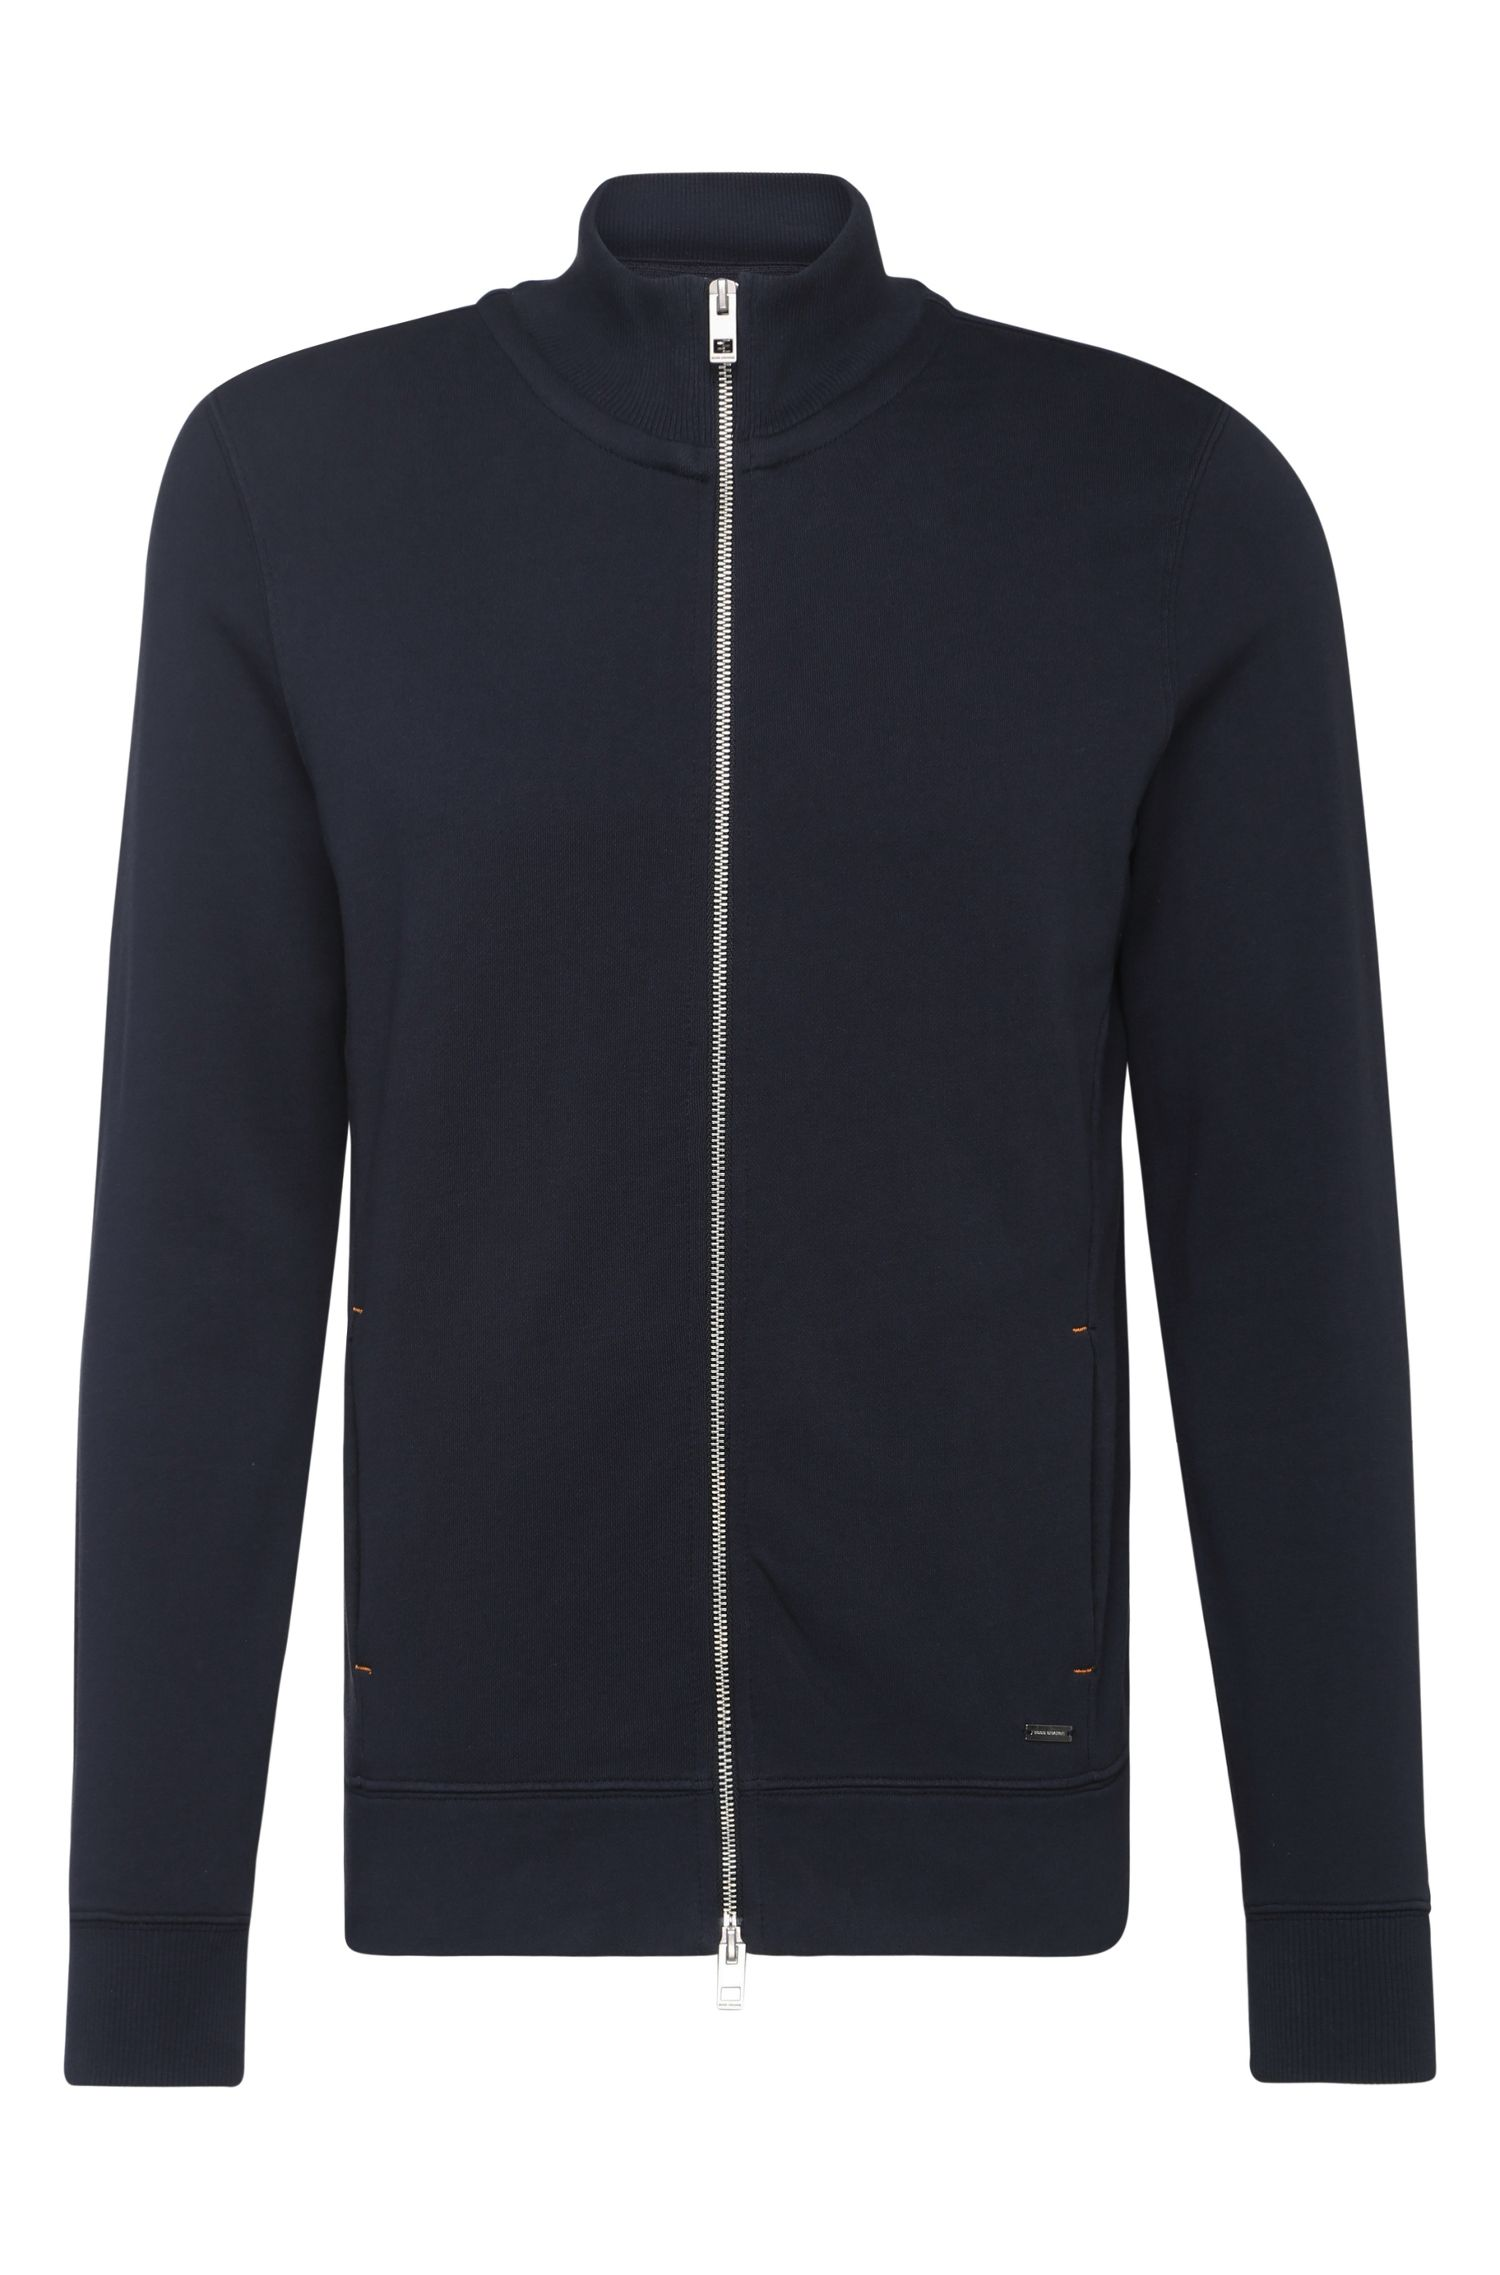 Regular-Fit Sweatshirt-Jacke aus Baumwolle: ´Zissou`